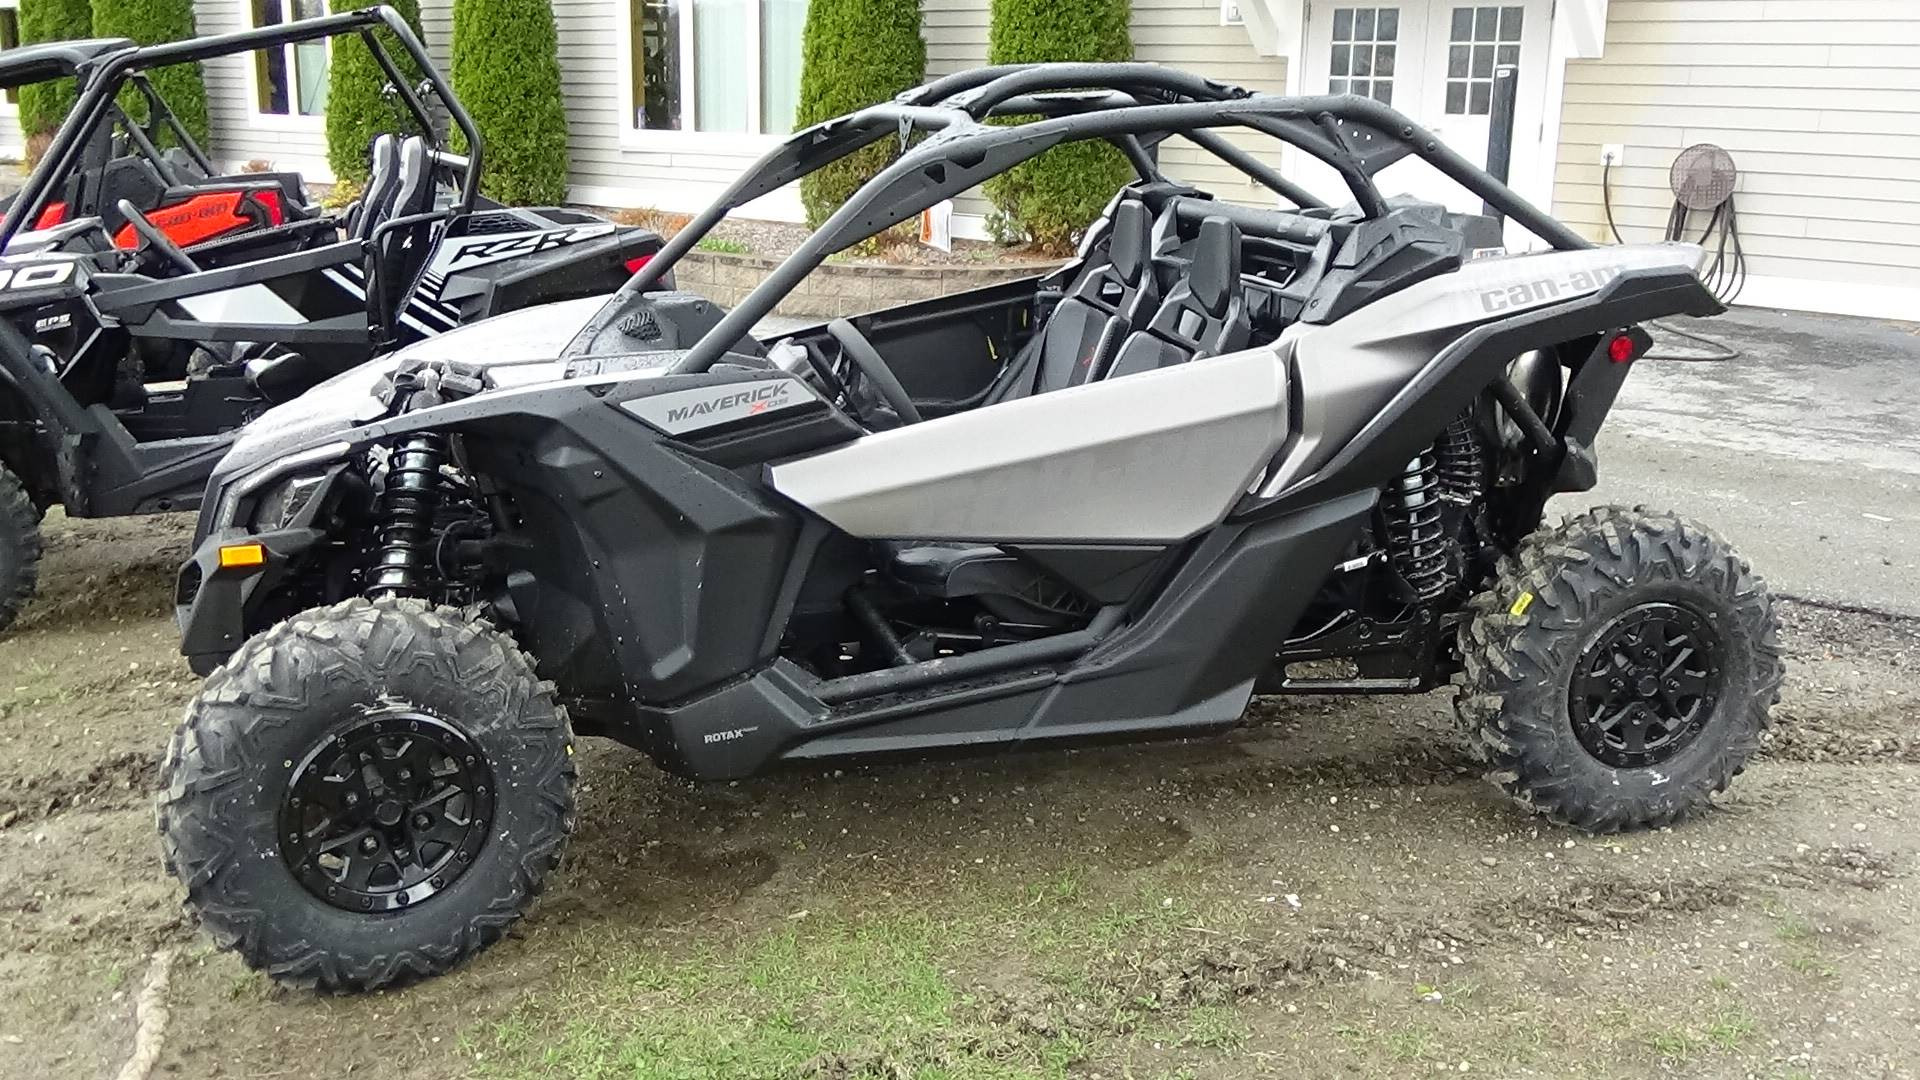 New 2019 Can-Am Maverick X3 X ds Turbo R Utility Vehicles in